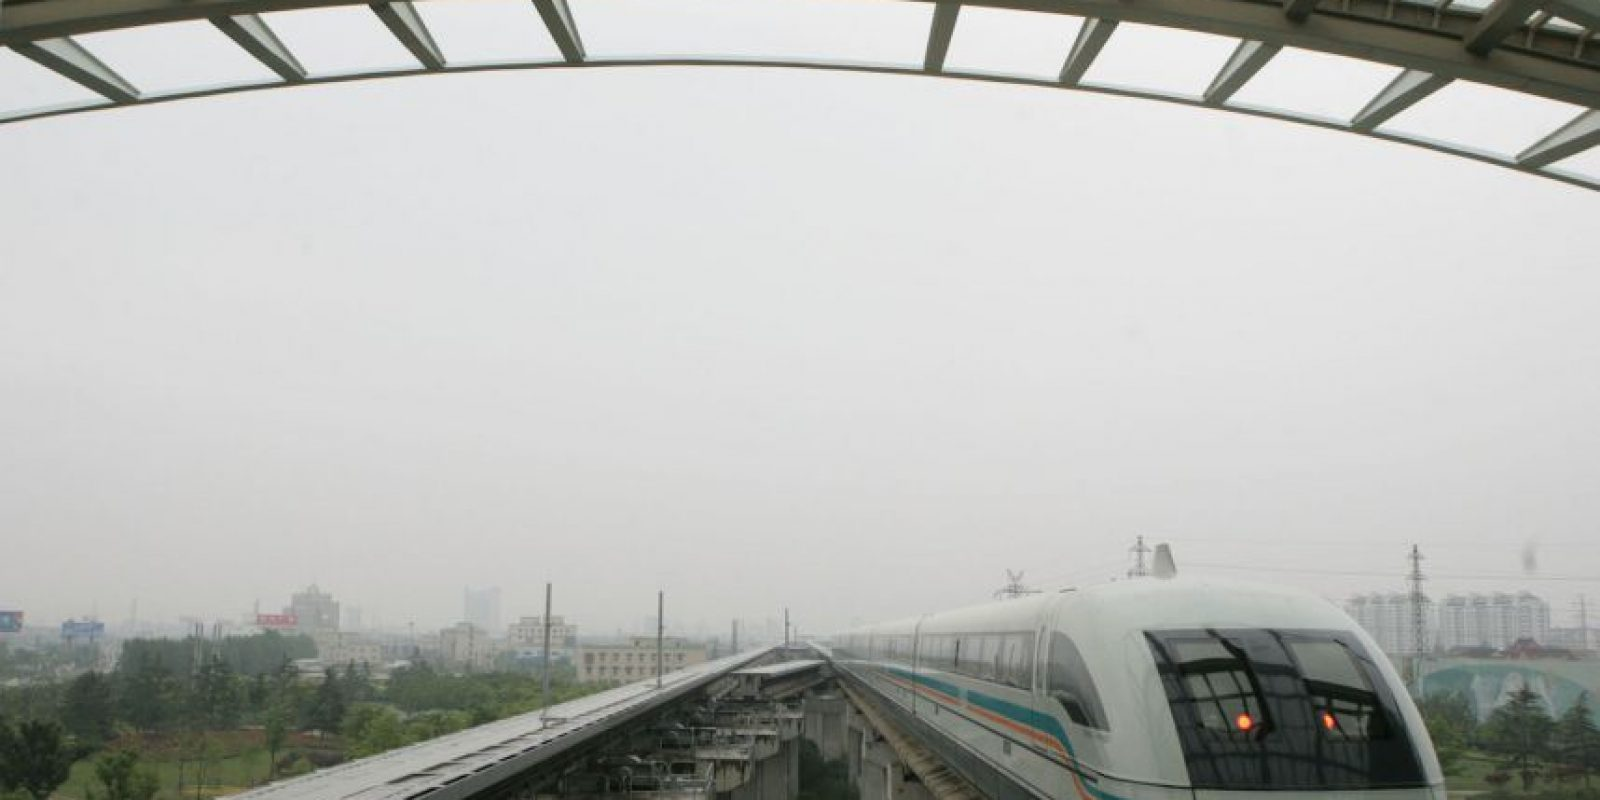 Shanghai Maglev Foto: Getty